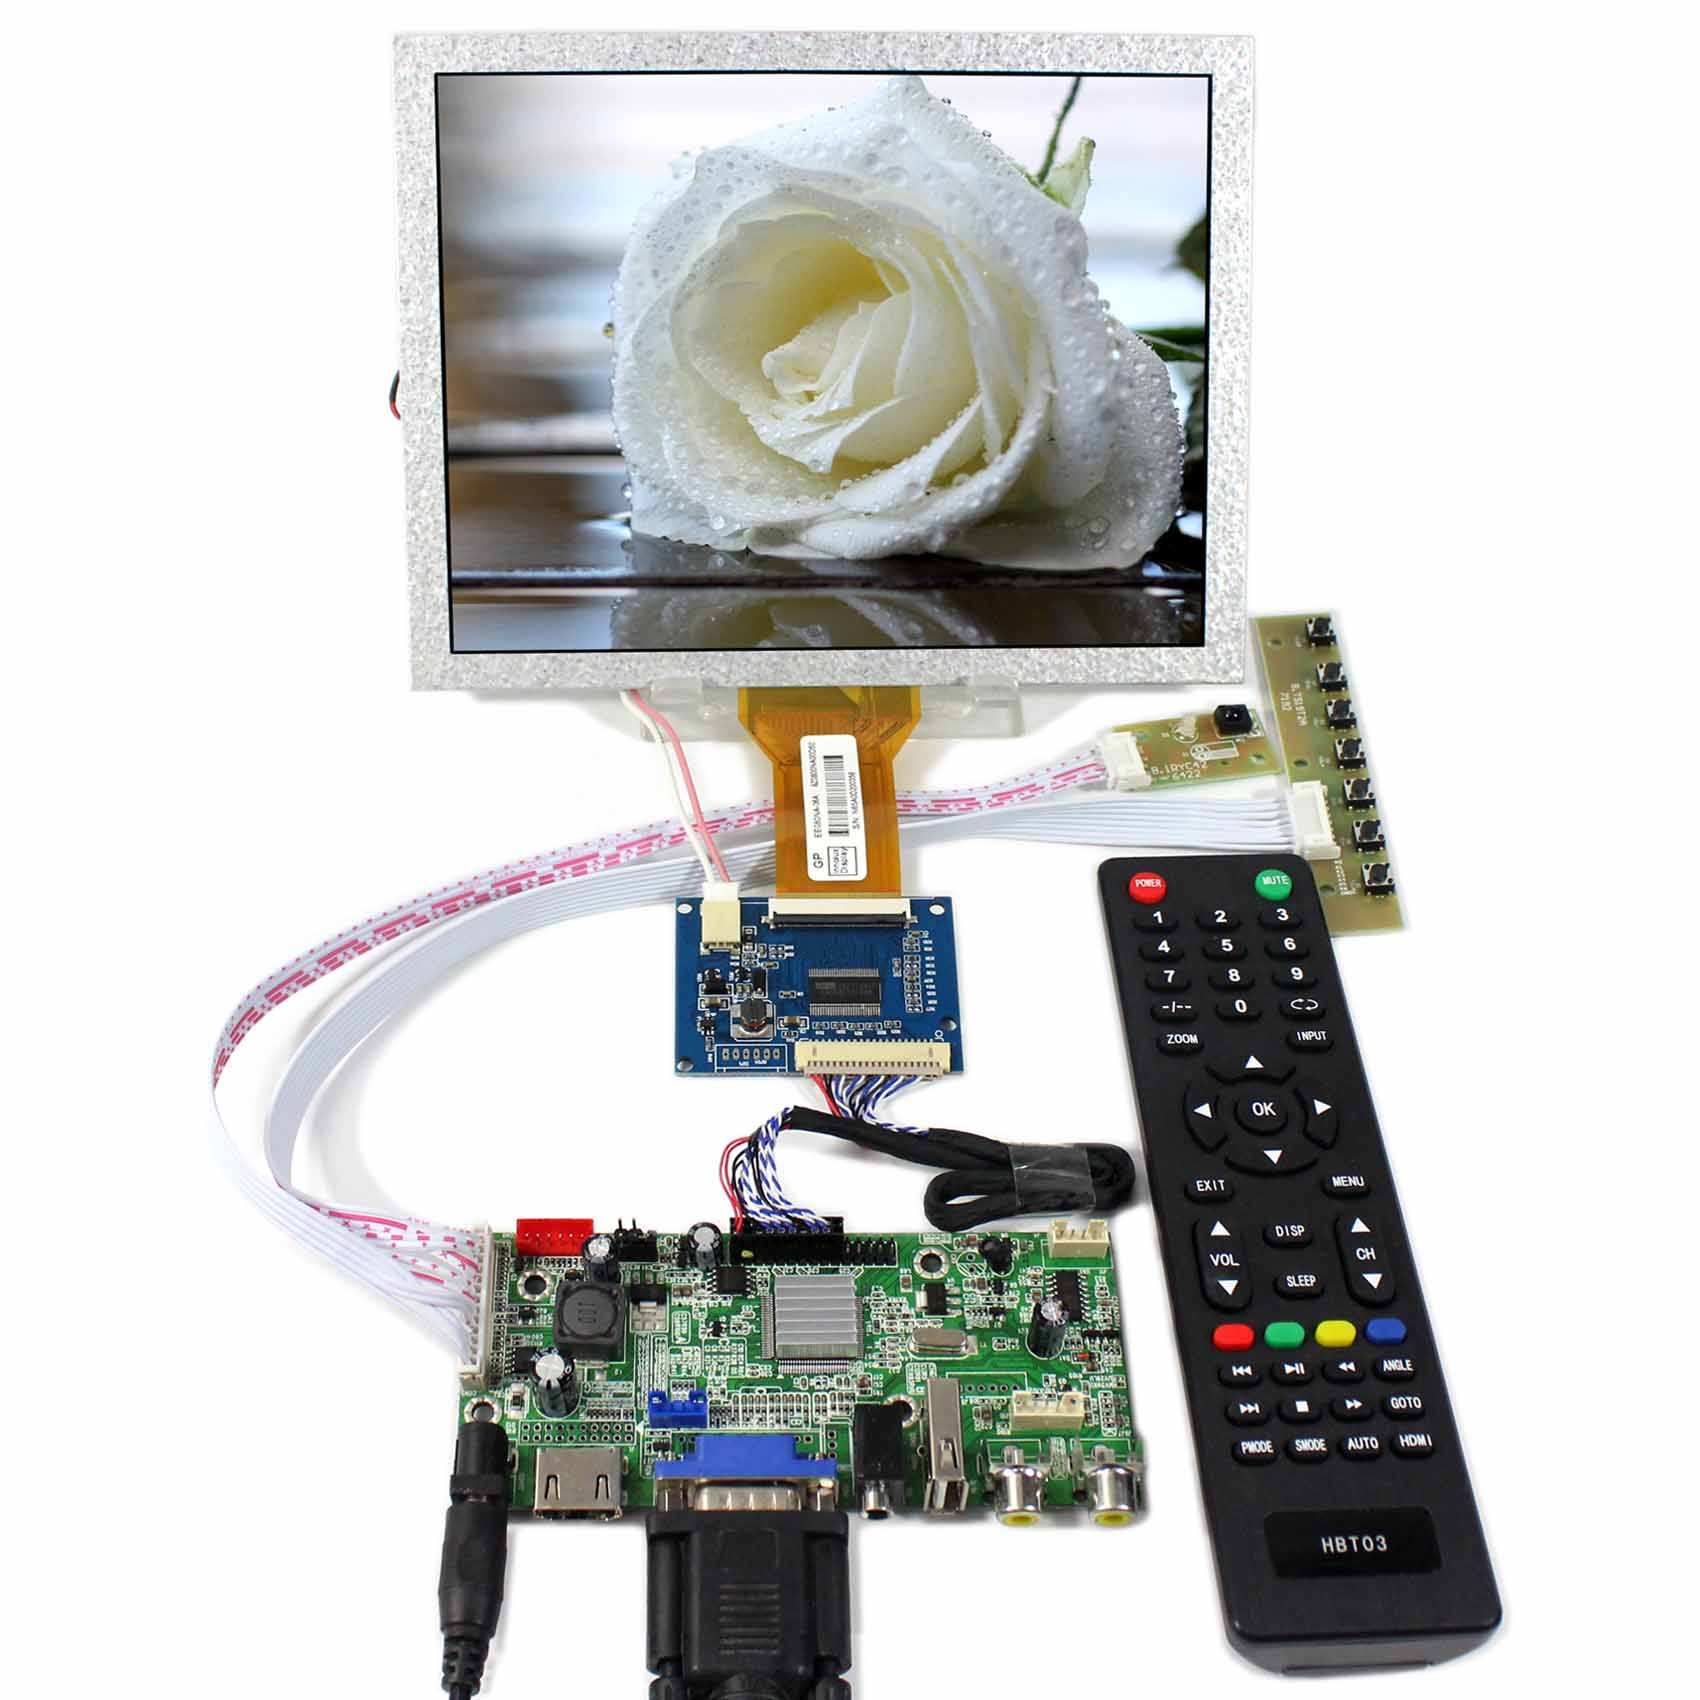 HDMI+VGA+AV+Audio+USB LCD Controller board With 8inch 800x600 EJ080NA-05A LCD Screen hdmi vga av audio usb fpv controller board 8inch 800x600 ej080na 05a lcd panel screen model lcd for raspberry pi